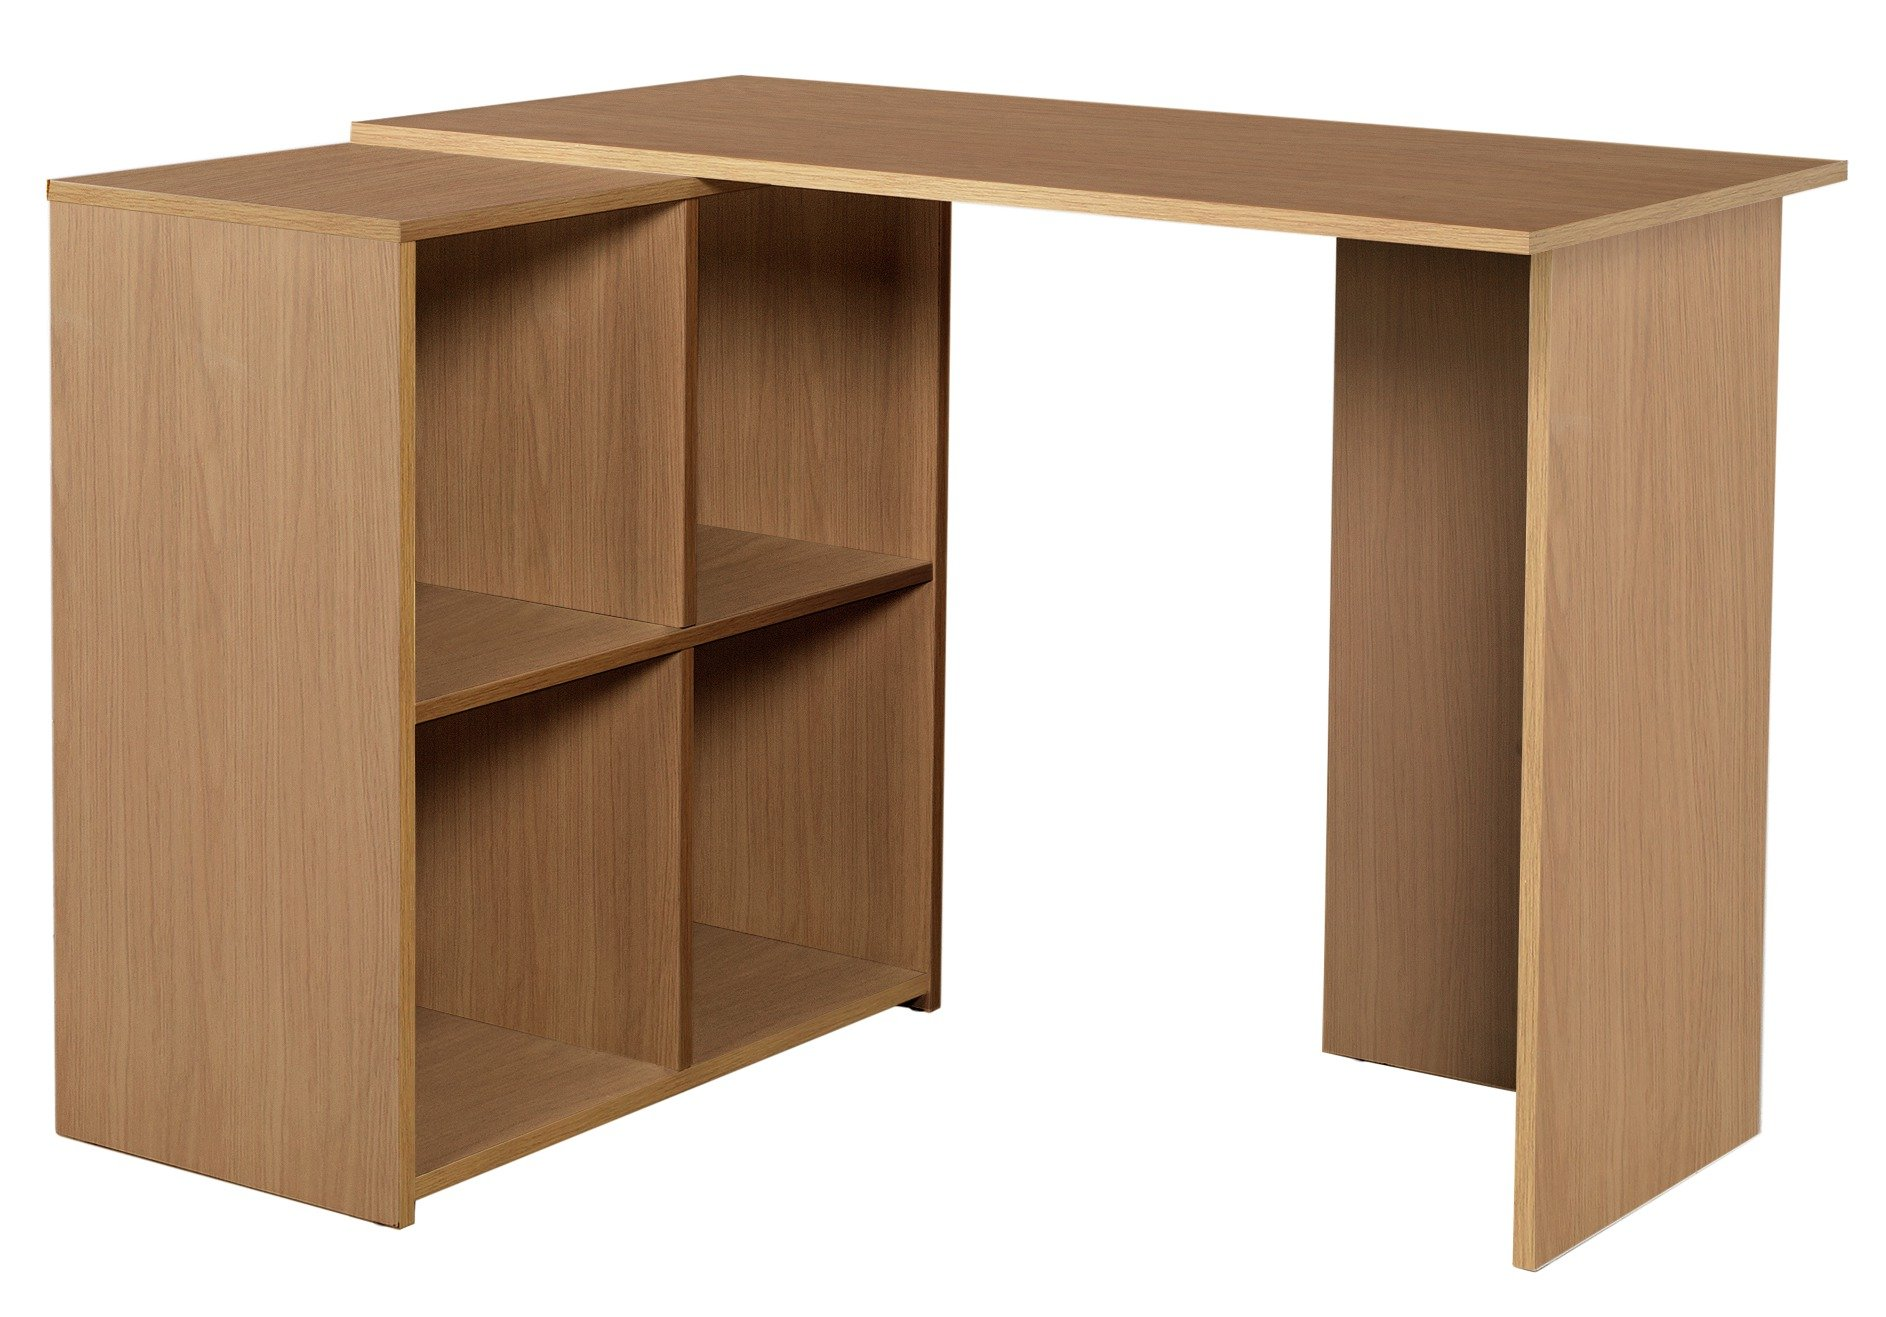 Image of Calgary - Corner - Desk - Oak Effect